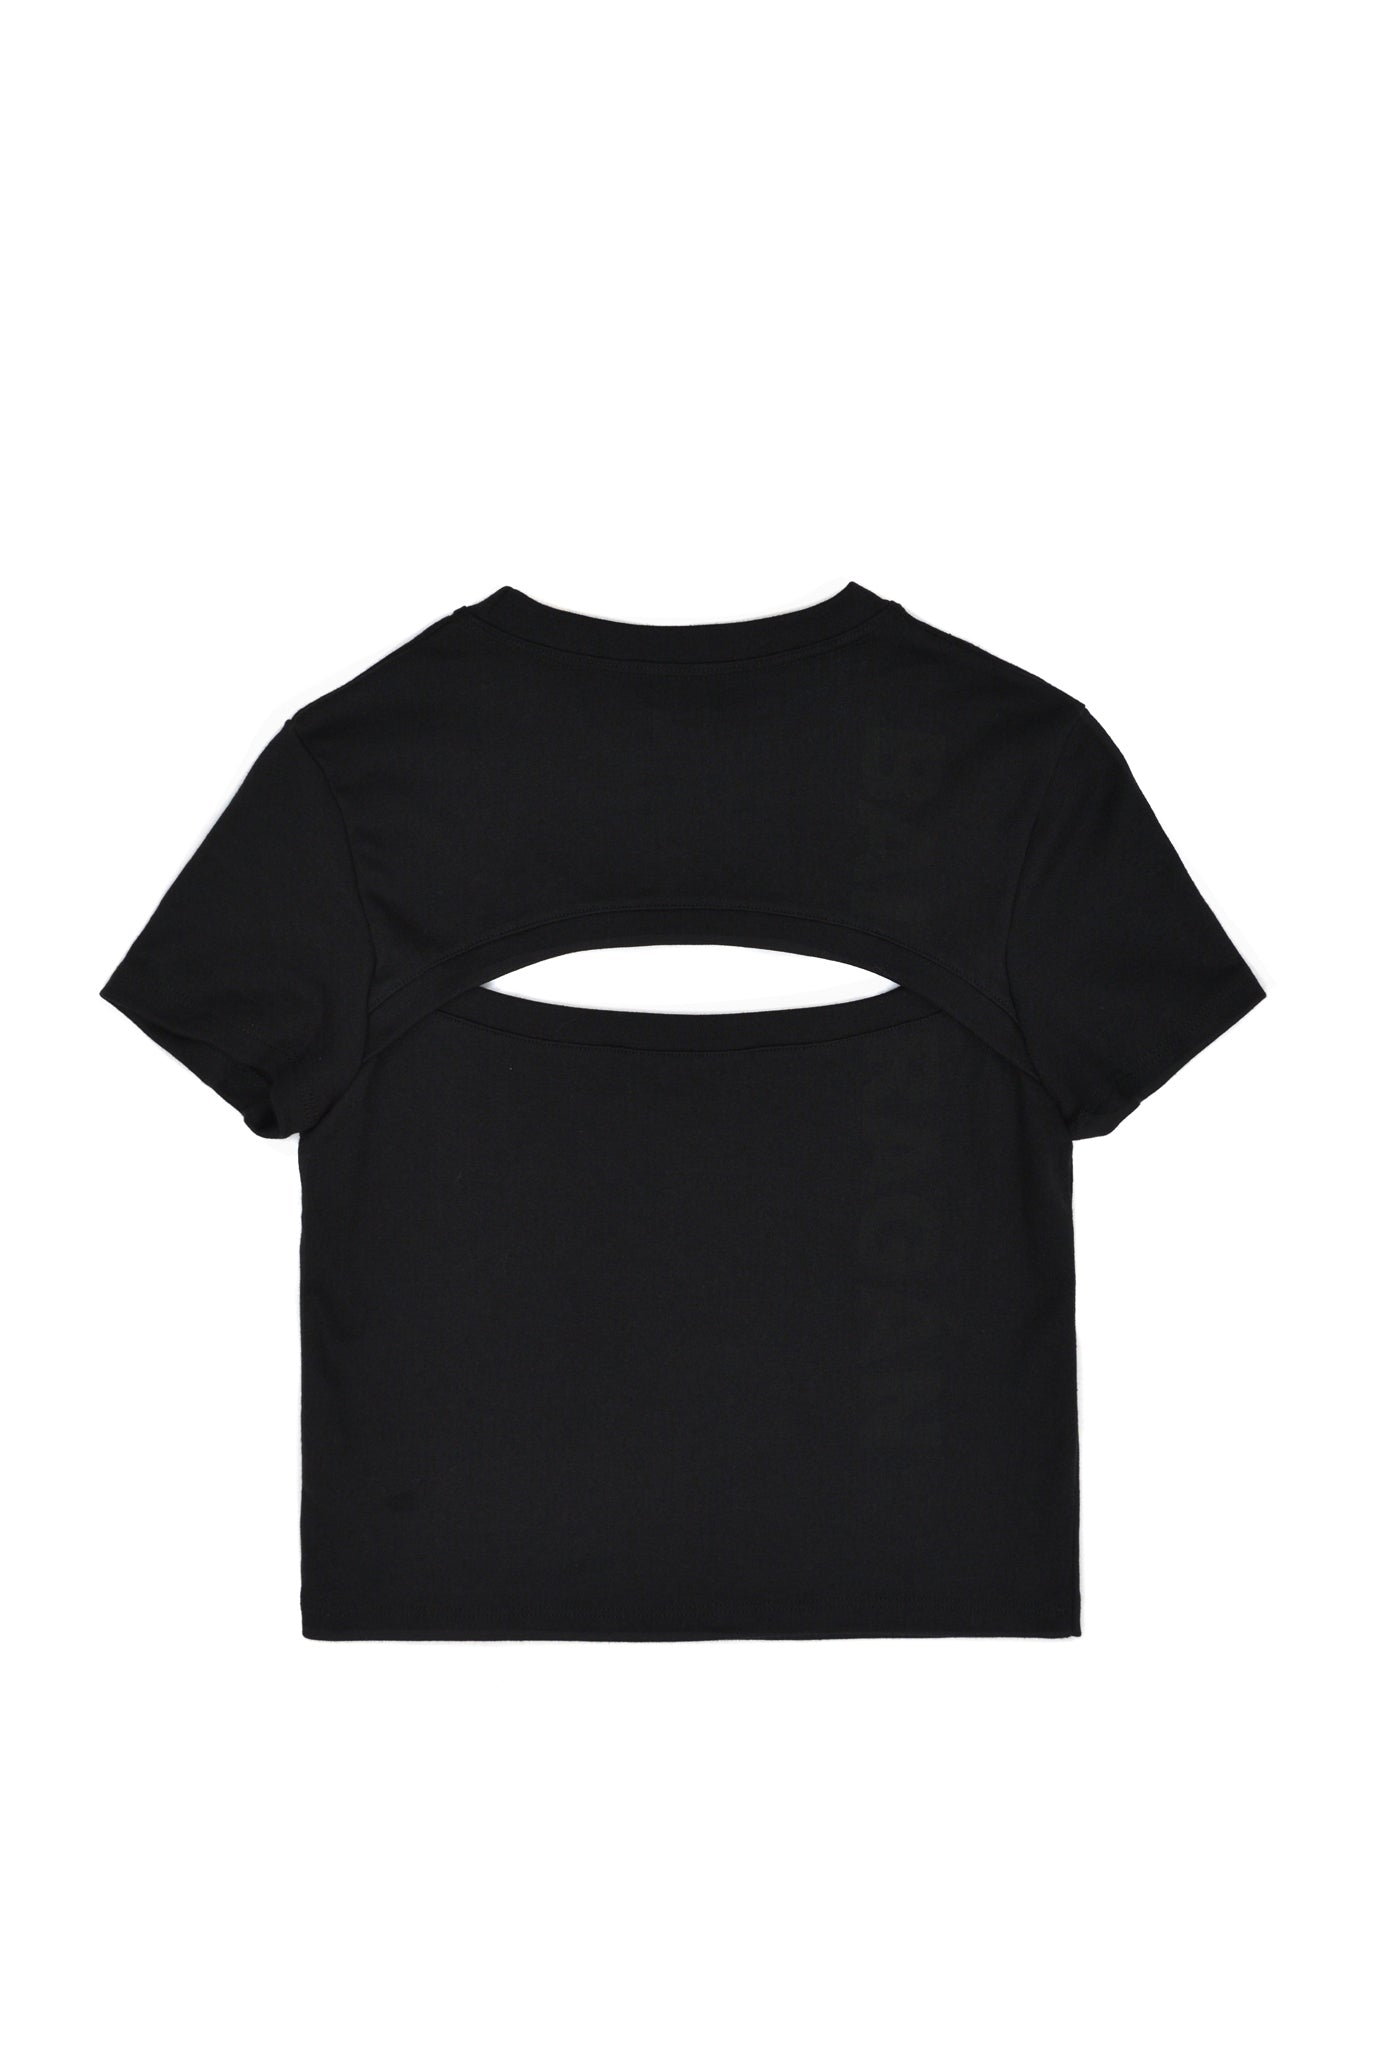 Barragán Cut-Out Logo Tee, Black